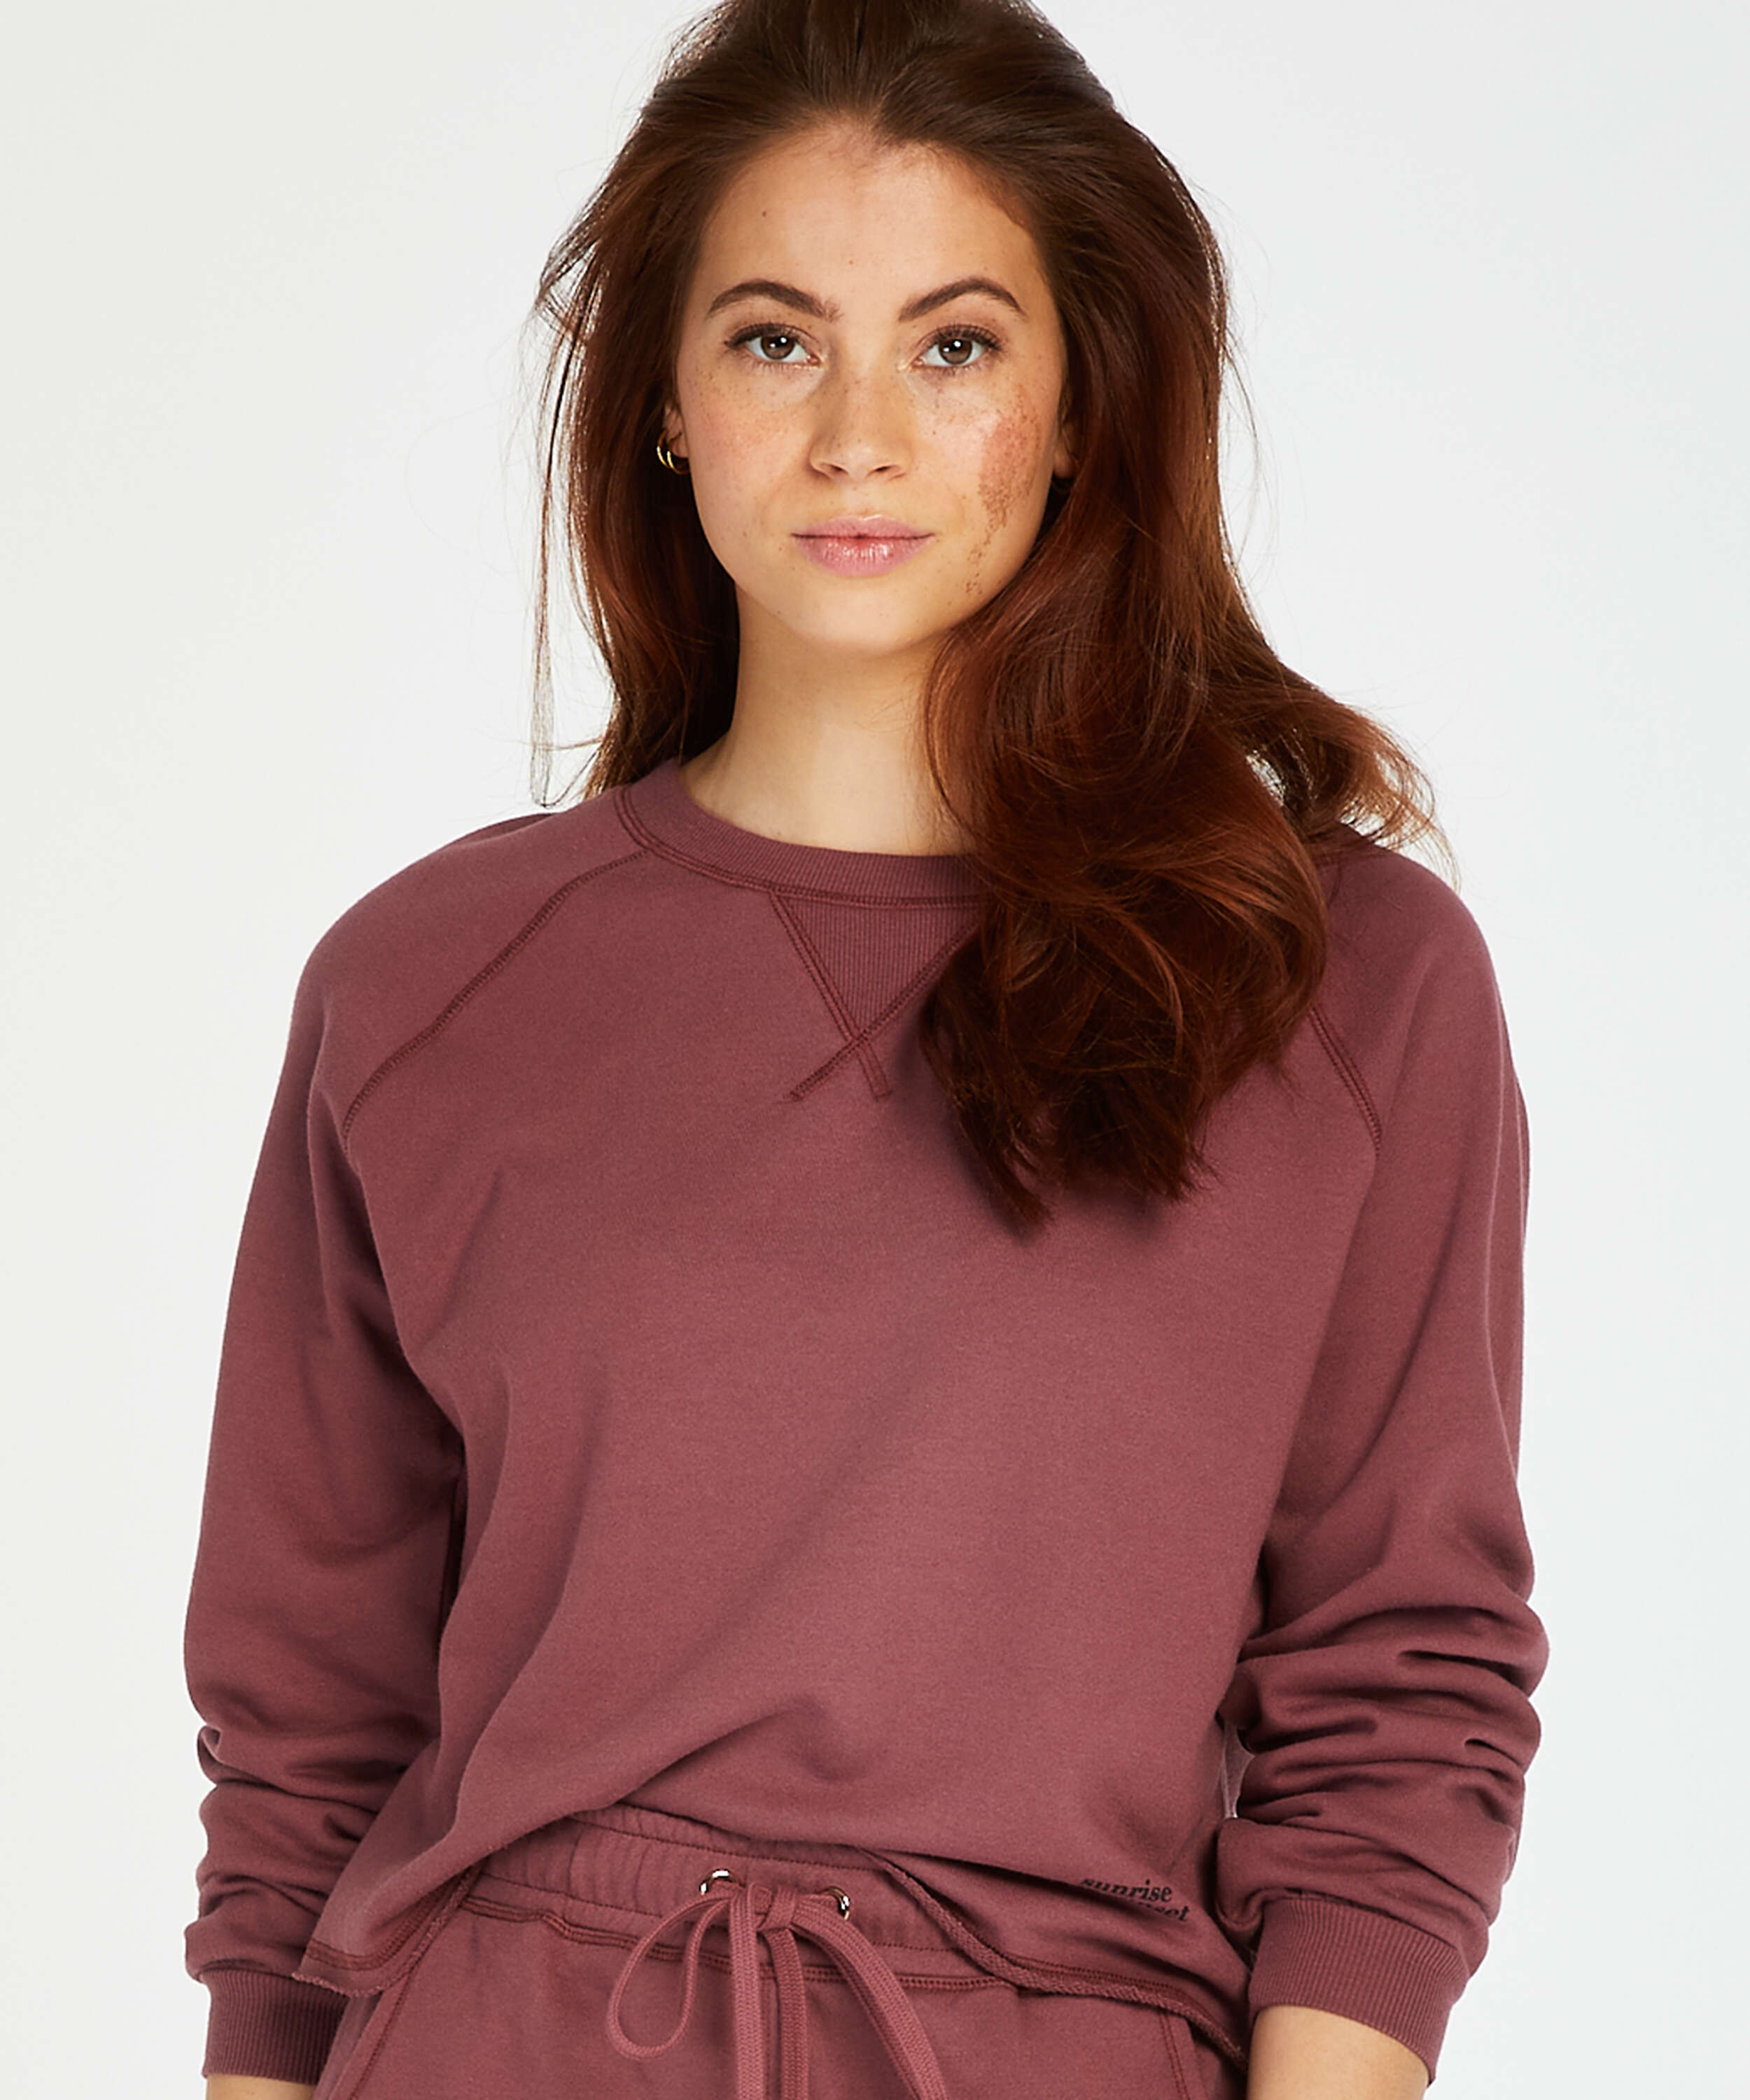 Sweat French Long-Sleeved Top, Rosa, main